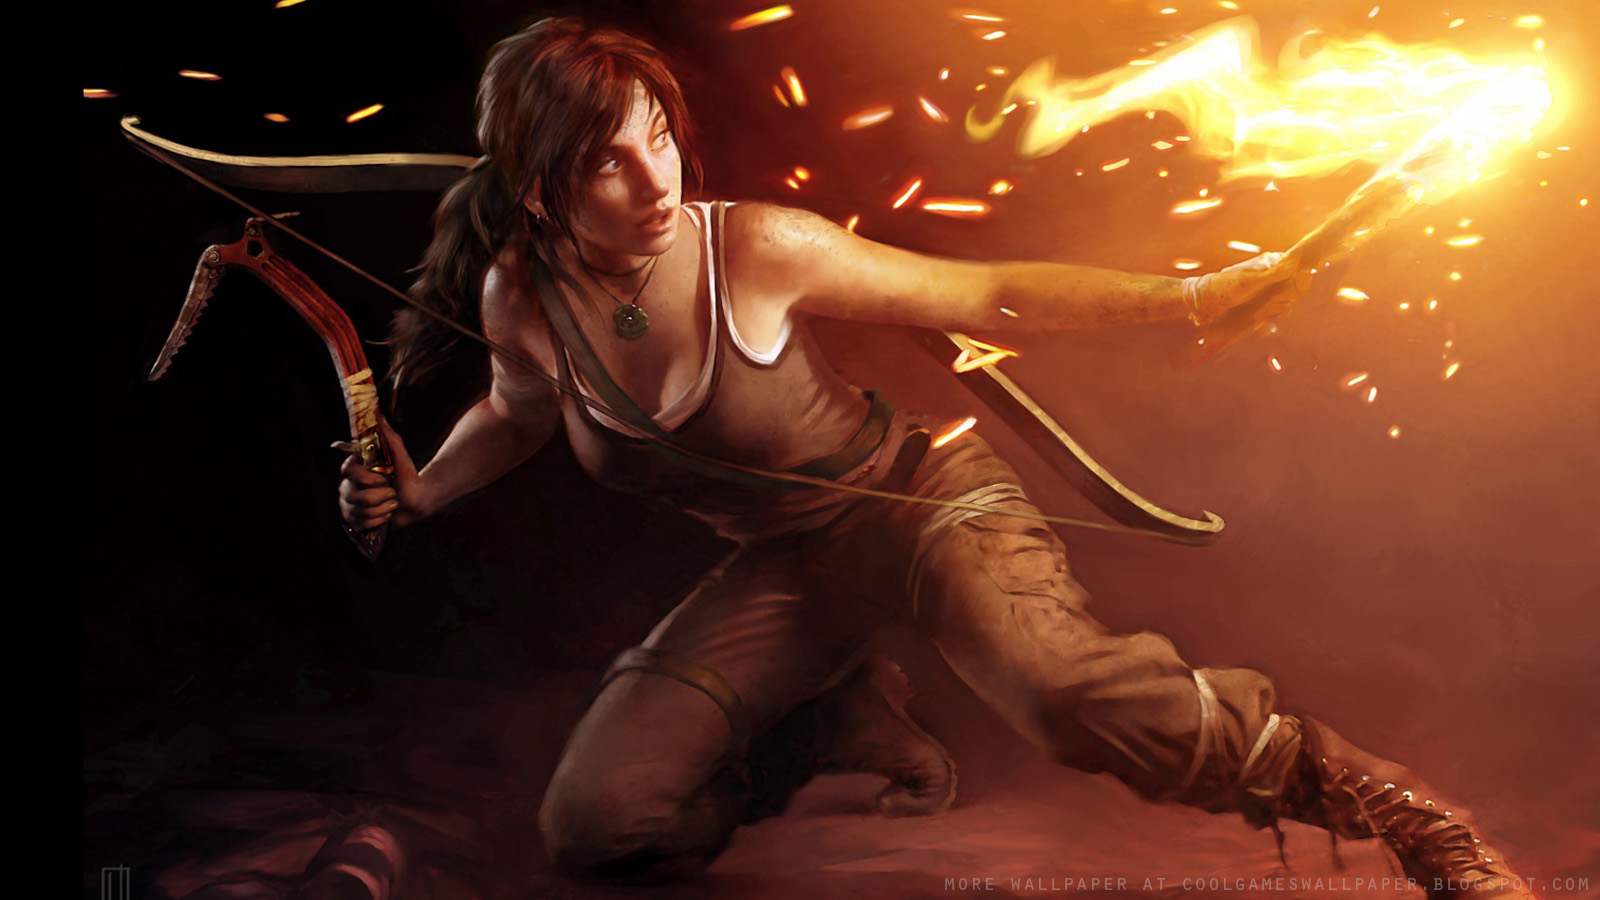 Tomb Raider 2013 Wallpaper: Hairstyles